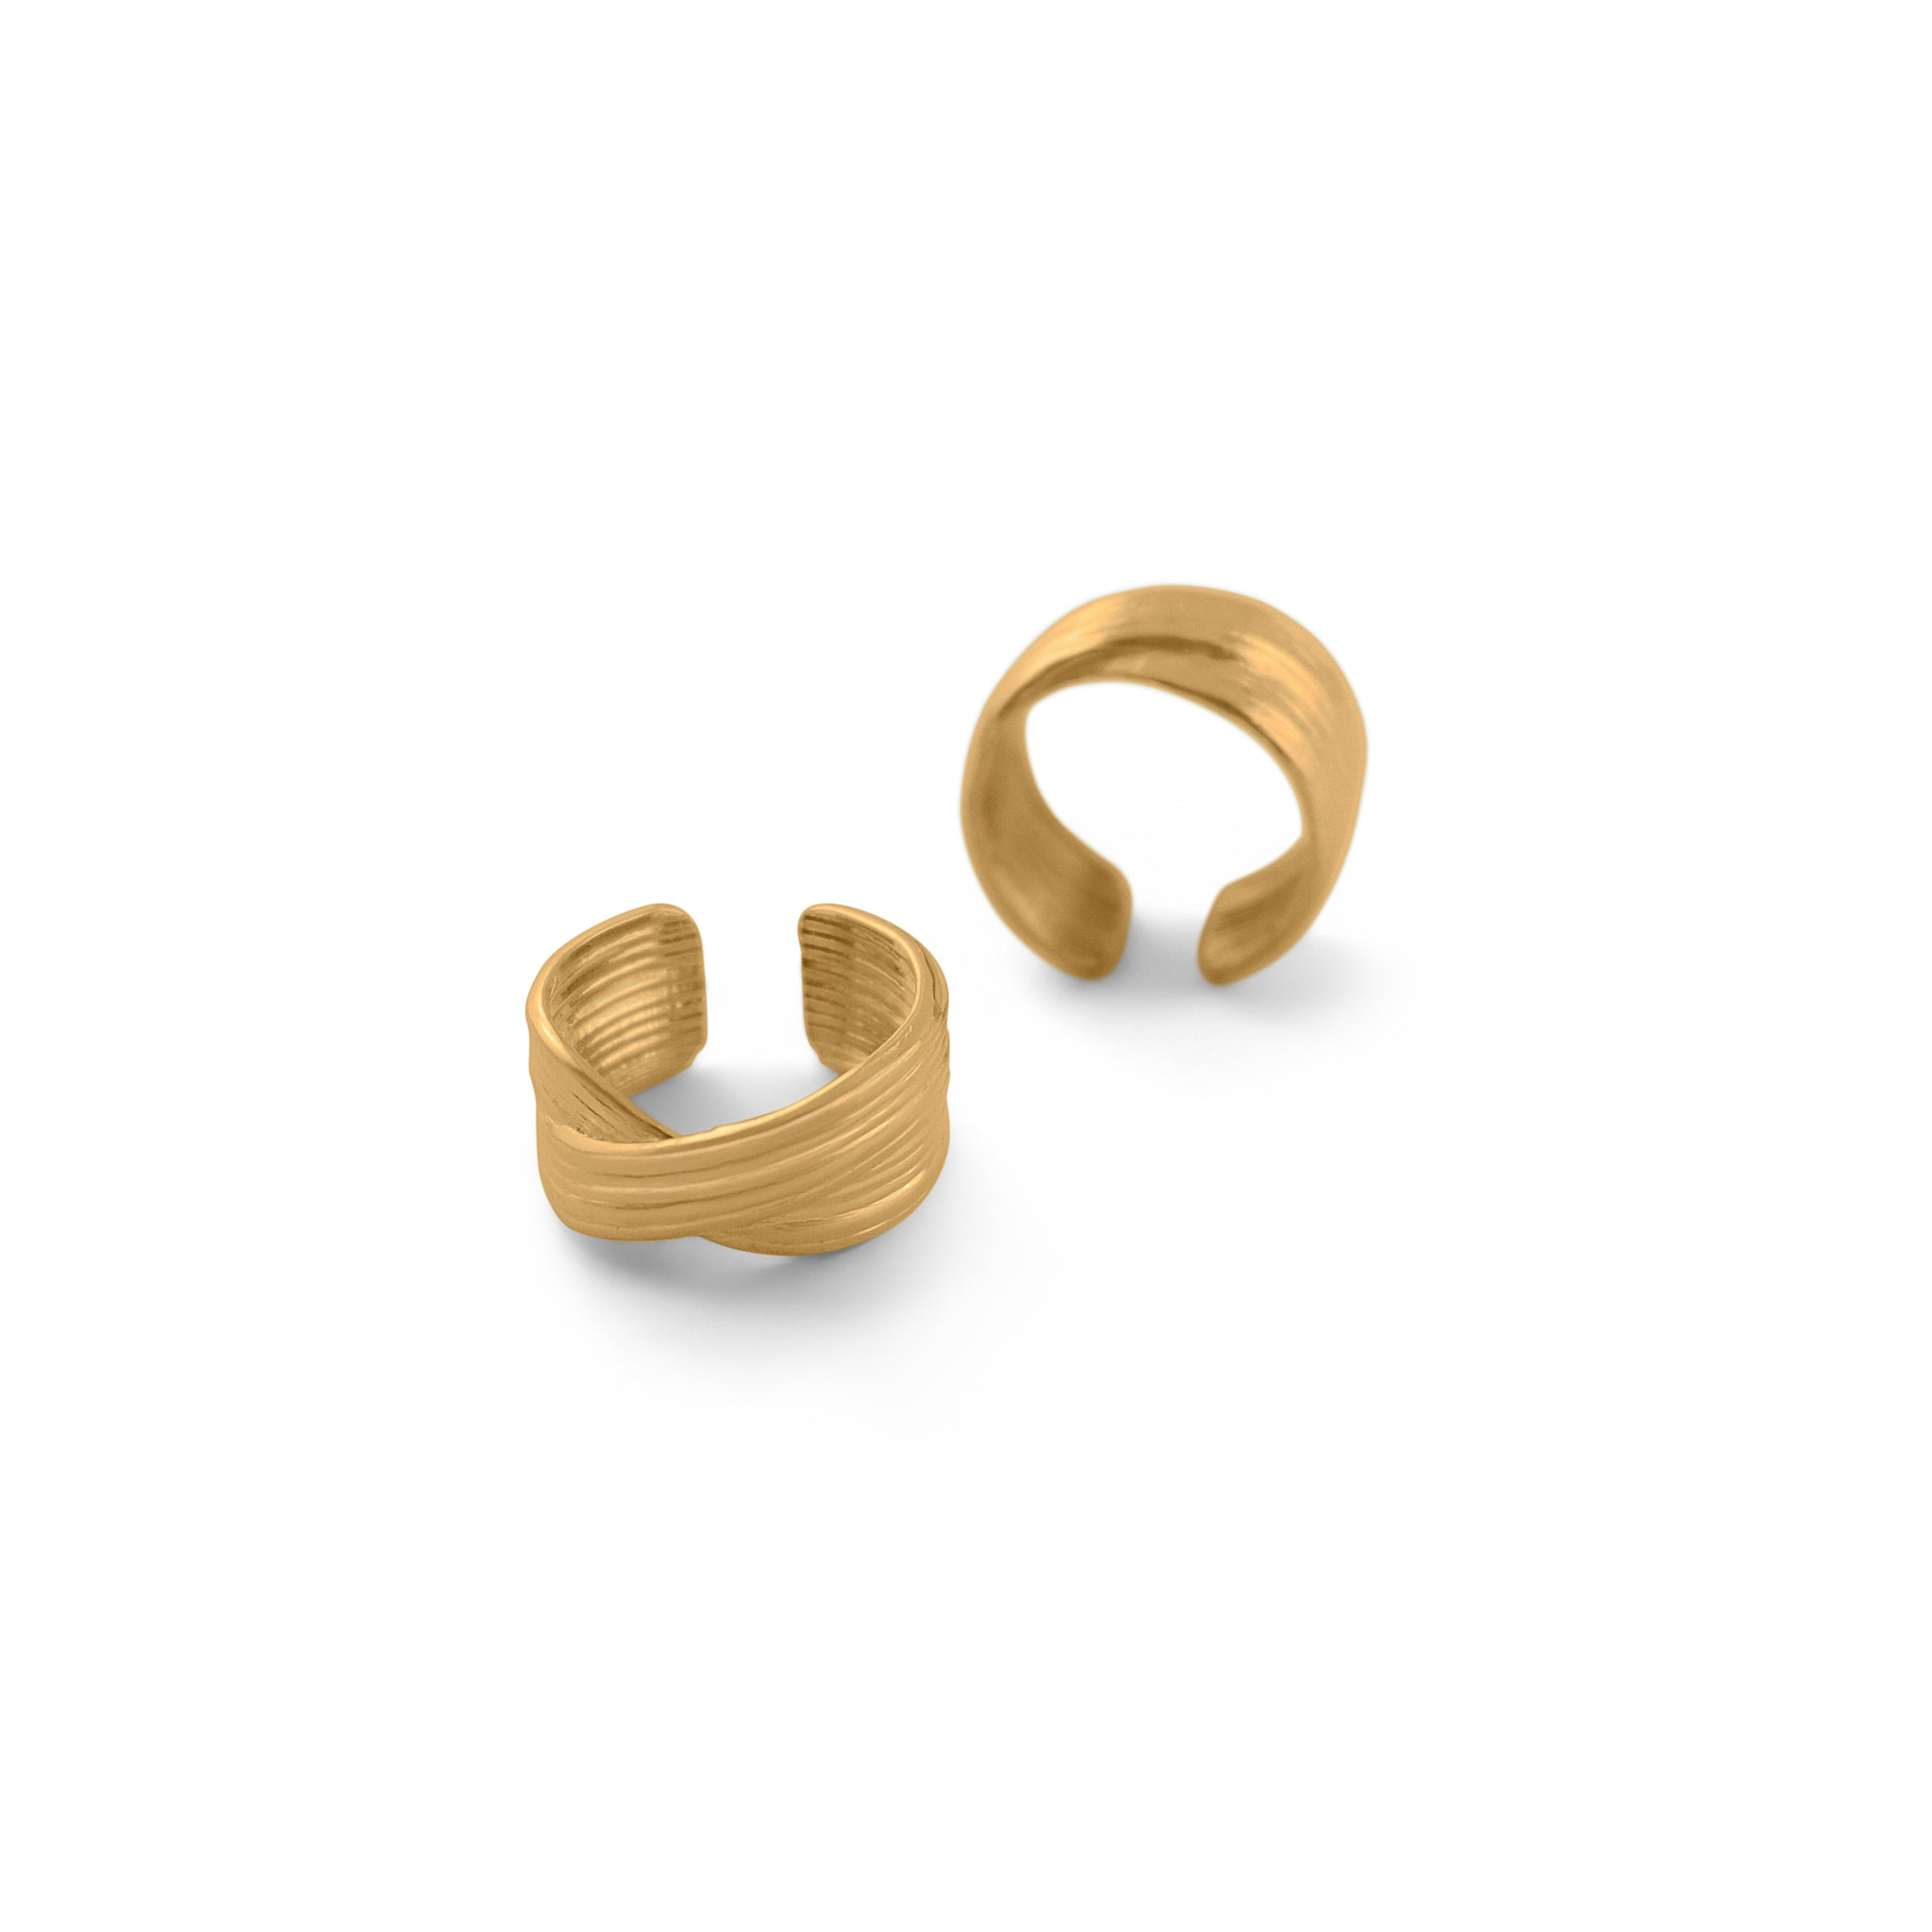 MISHO DESIGNS - KATANA RING SET